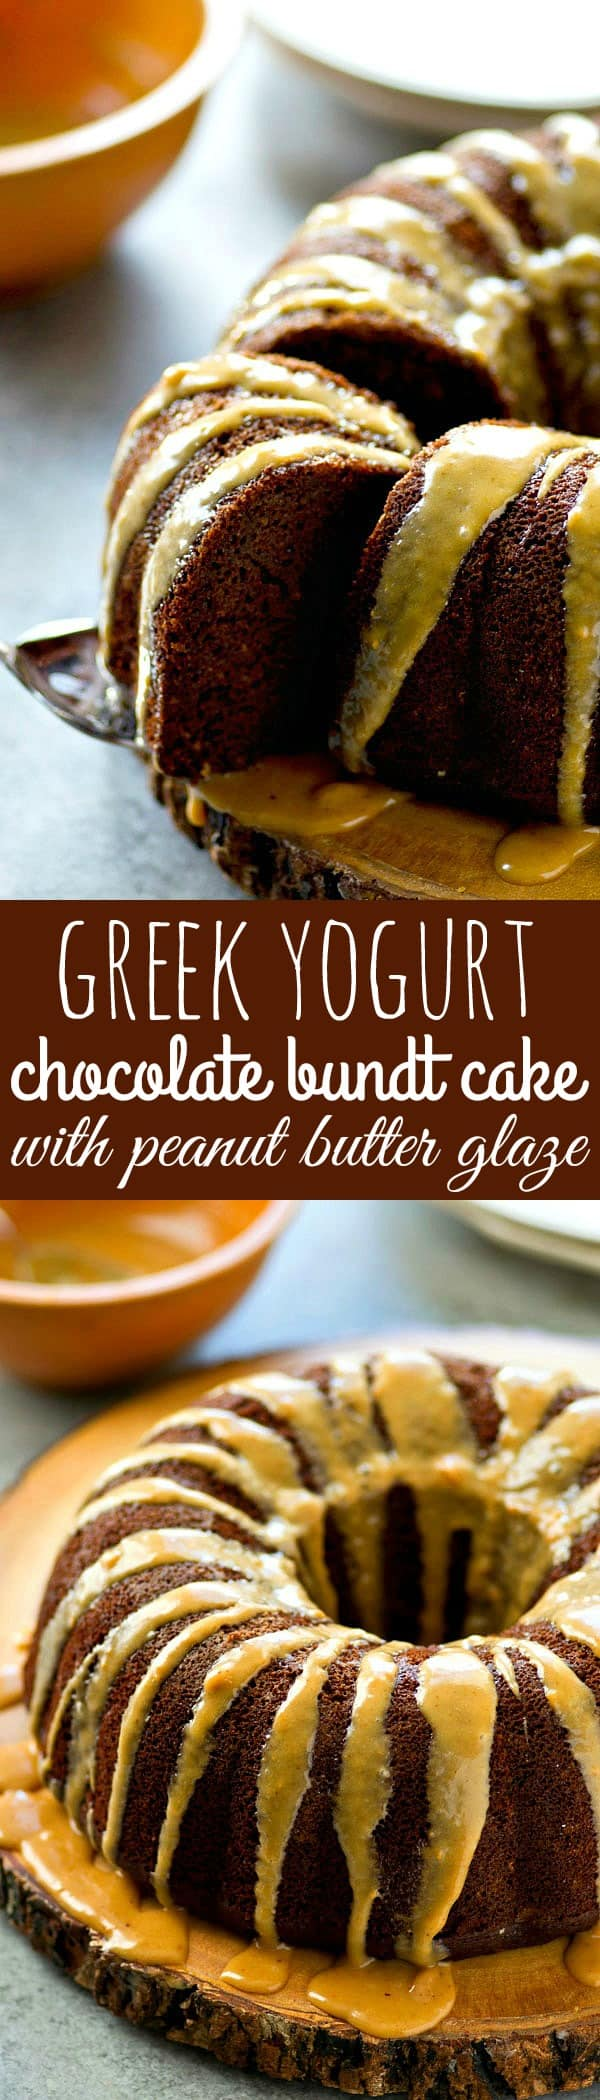 Classic chocolate bundt cake gets a healthy makeover by using greek yogurt! This stunning cake is ultimately chocolate-y and moist inside and drizzled with an amazing peanut butter glaze!